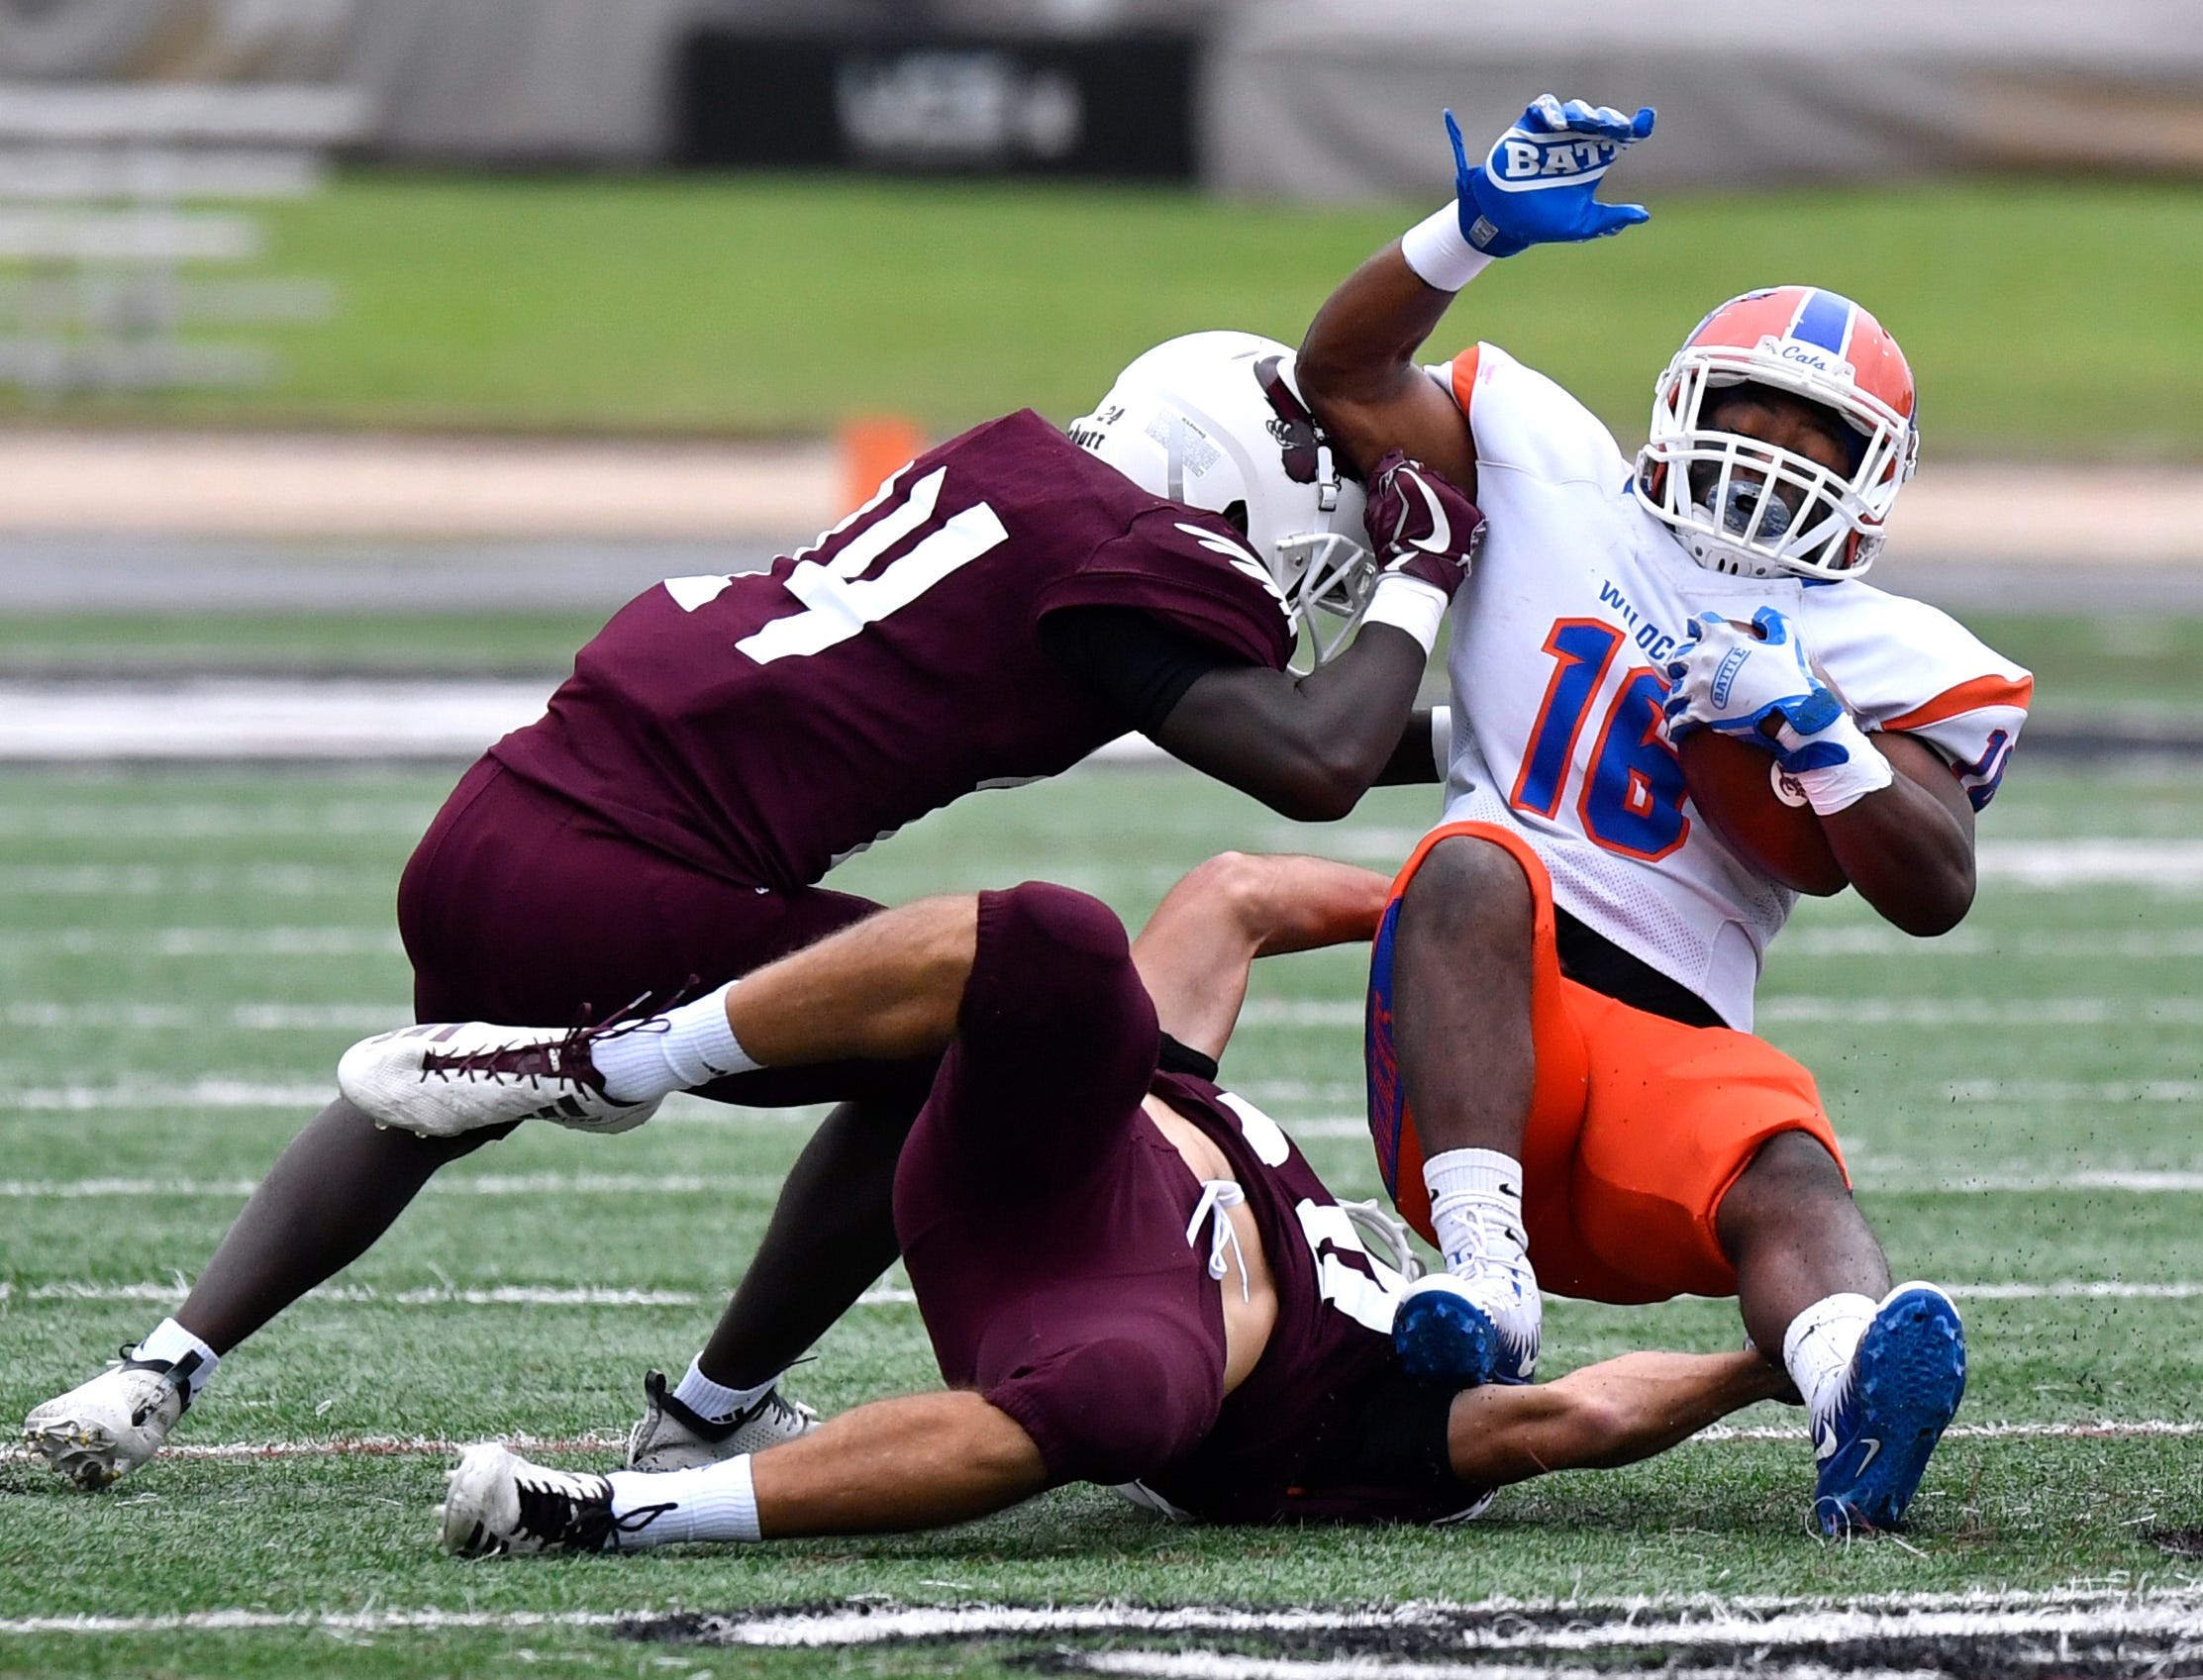 McMurry defensive backs Edward Coleman, jr. (left) and Reagan Miller tackle Louisiana College's running back Melvin Young III Saturday Oct. 13, 2018. Final score was 35-23, Louisiana.